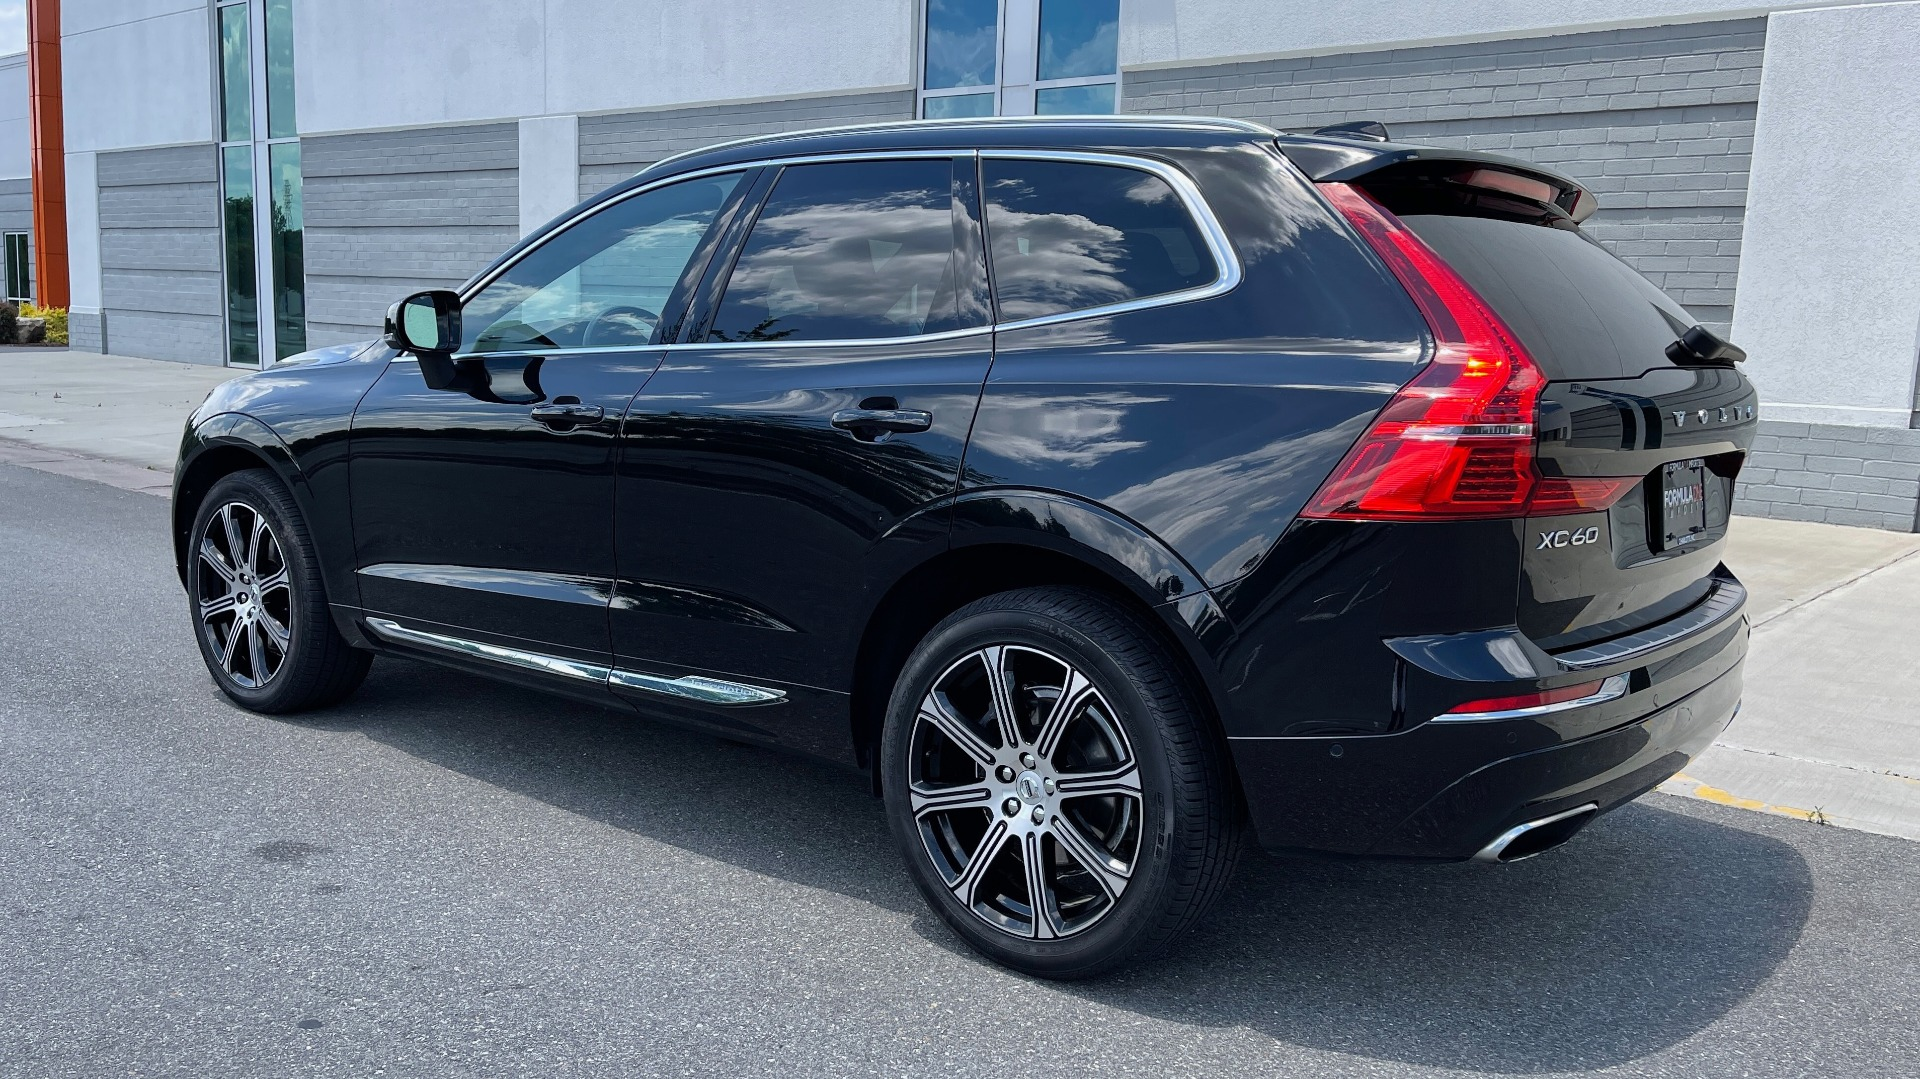 Used 2018 Volvo XC60 INSCRIPTION 2.0L TURBO SUV / AWD / NAV / SUNROOF / REARVIEW for sale $38,795 at Formula Imports in Charlotte NC 28227 5